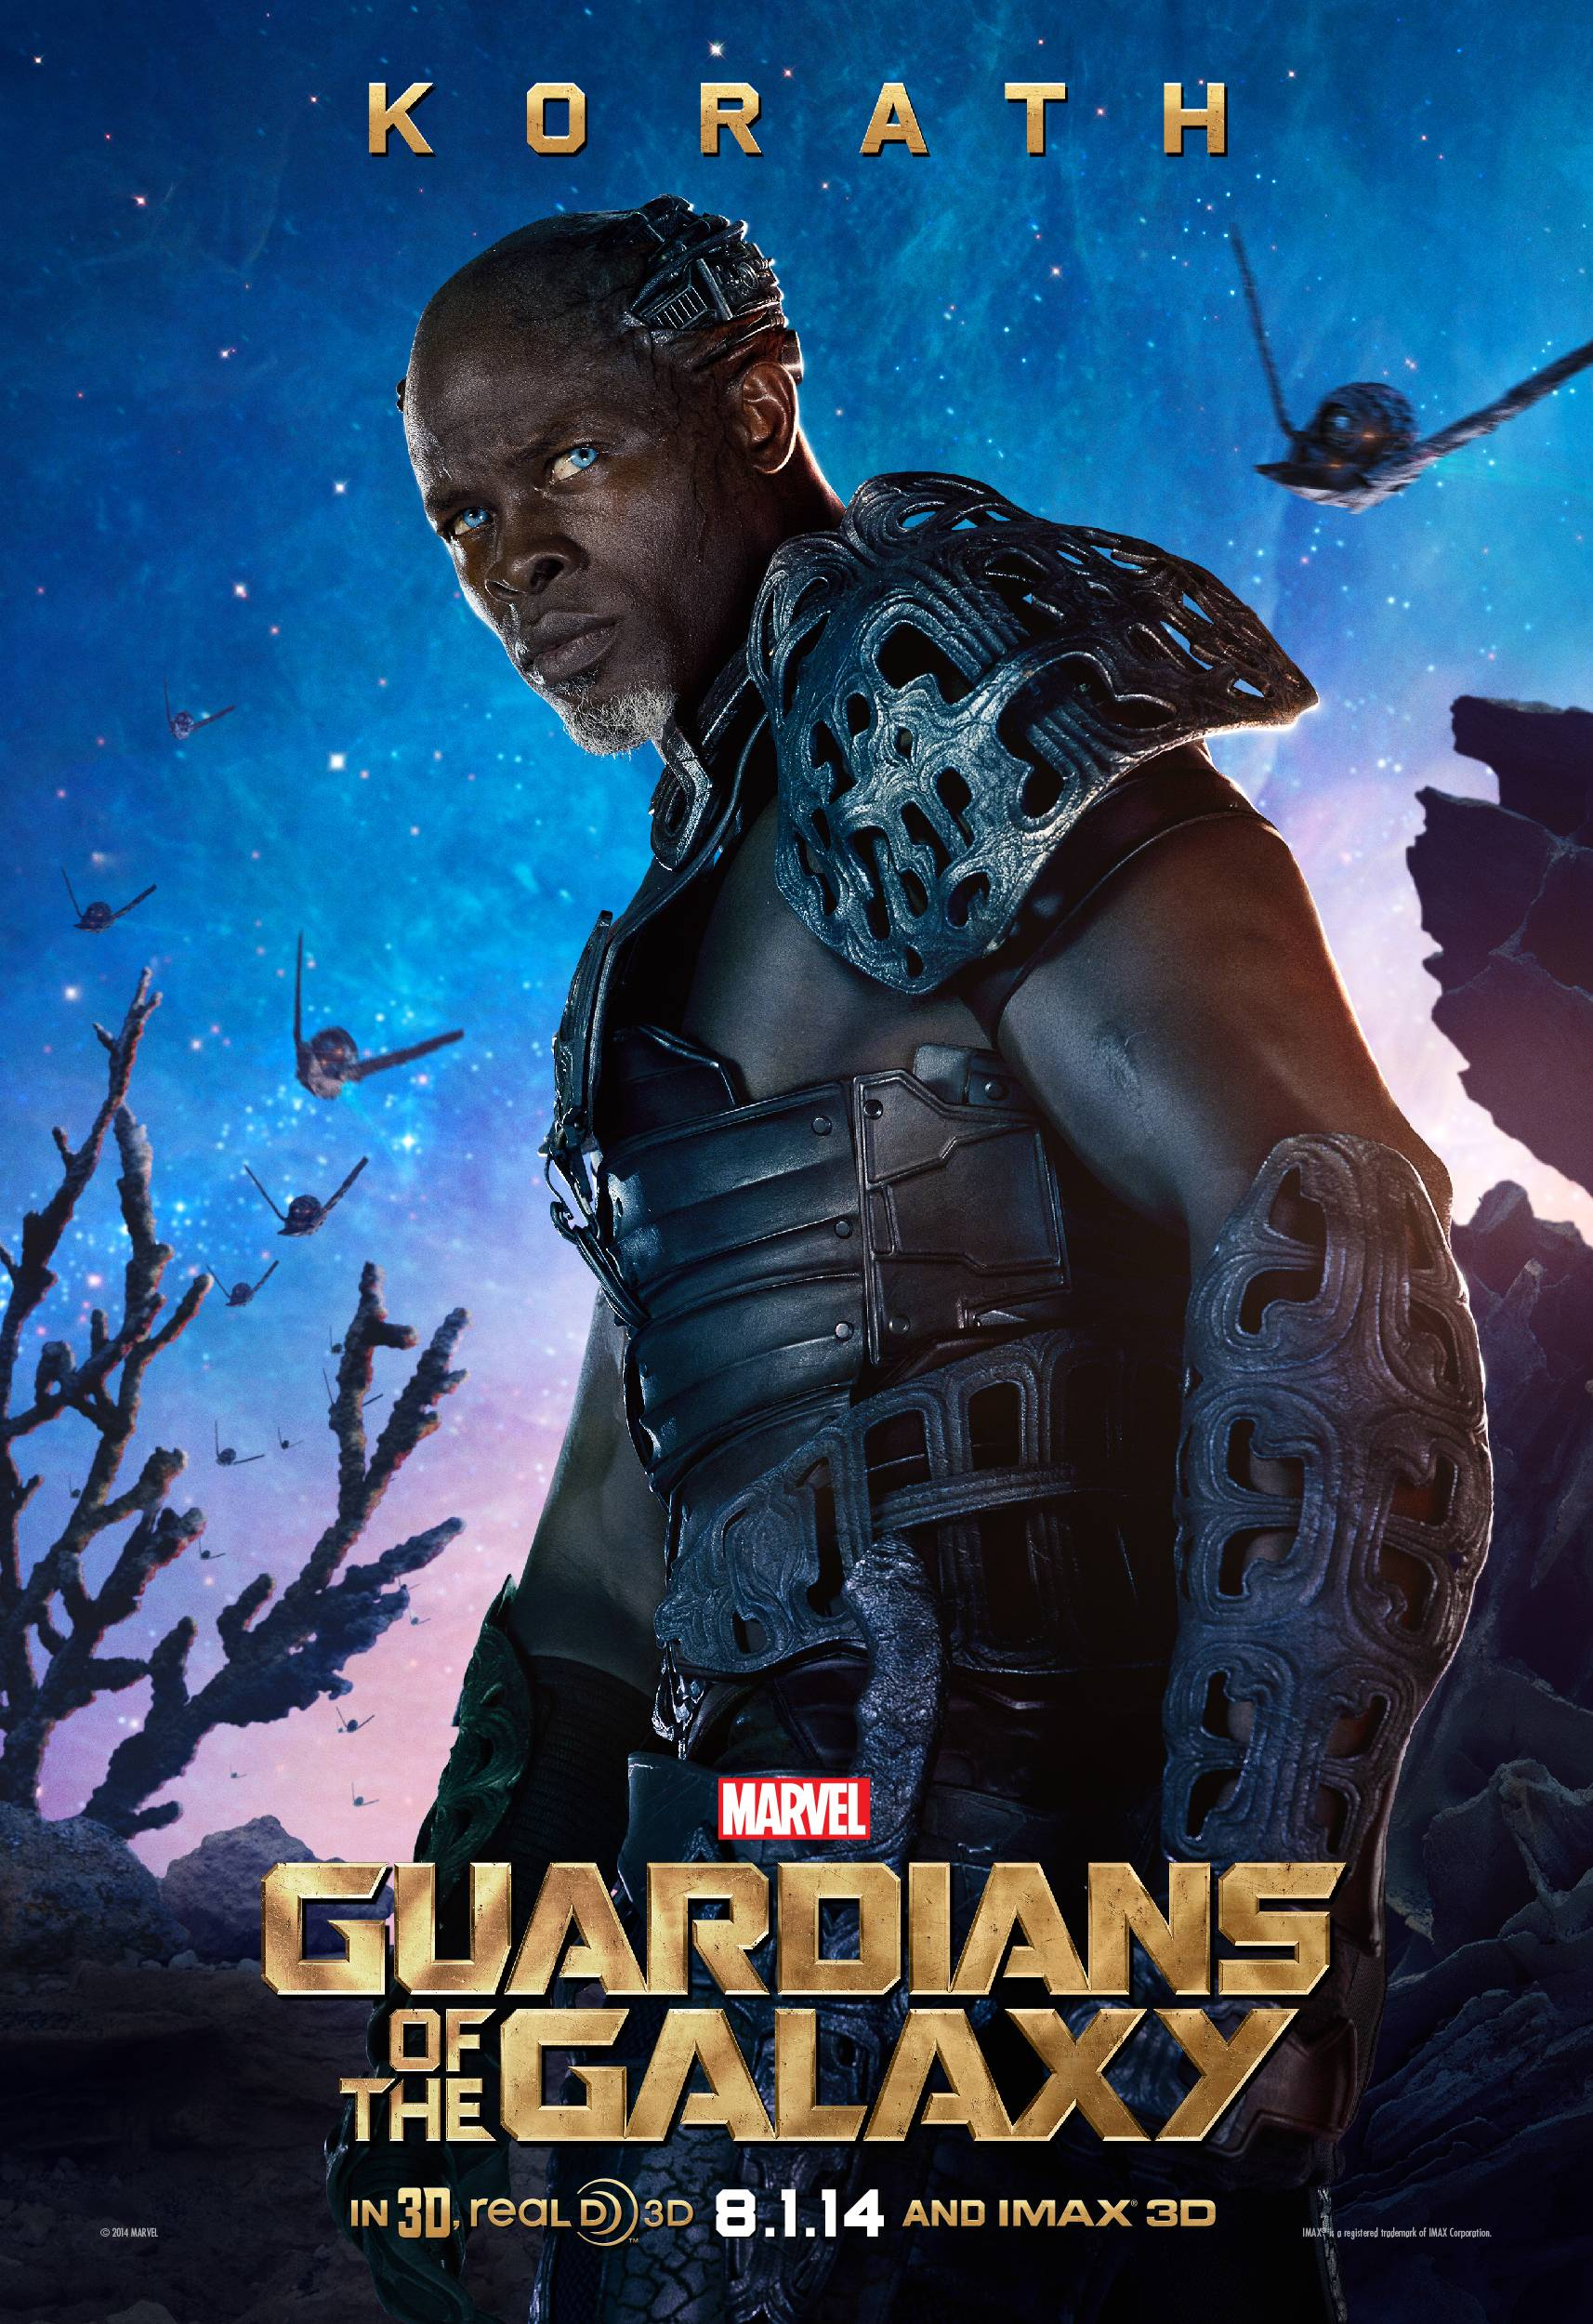 Download Wallpaper Movie Guardians The Galaxy - Guardians-of-the-Galaxy-Korath-Wallpaper  Graphic_735223.jpg